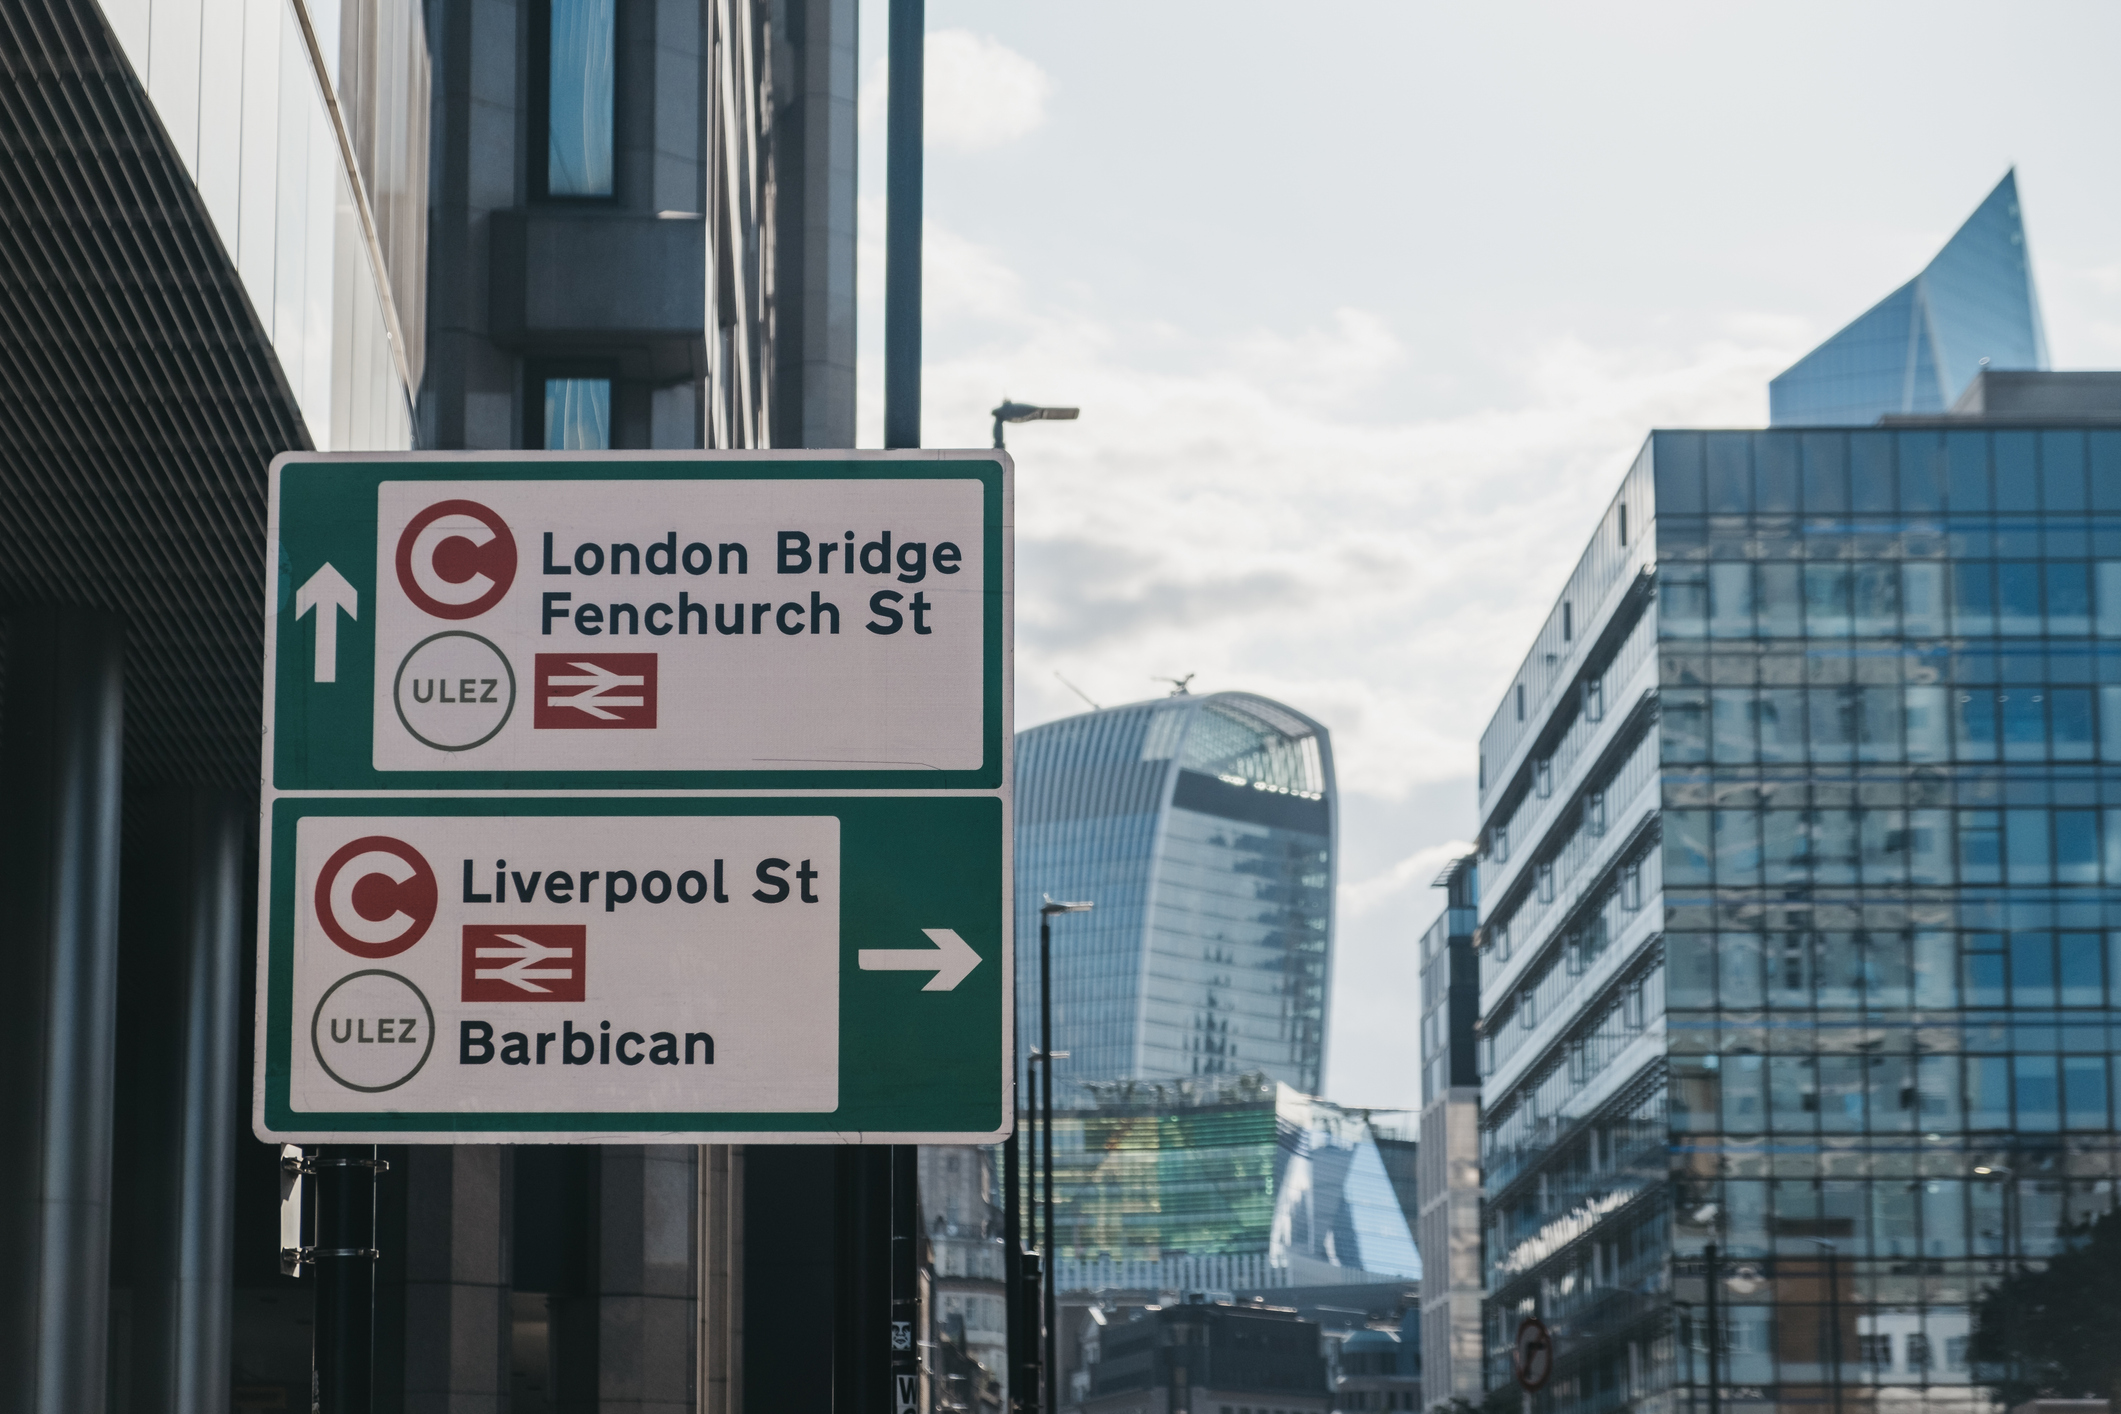 Signs indicating the direction of Ultra Low Emission Zone (ULEZ) on a street in London, UK.